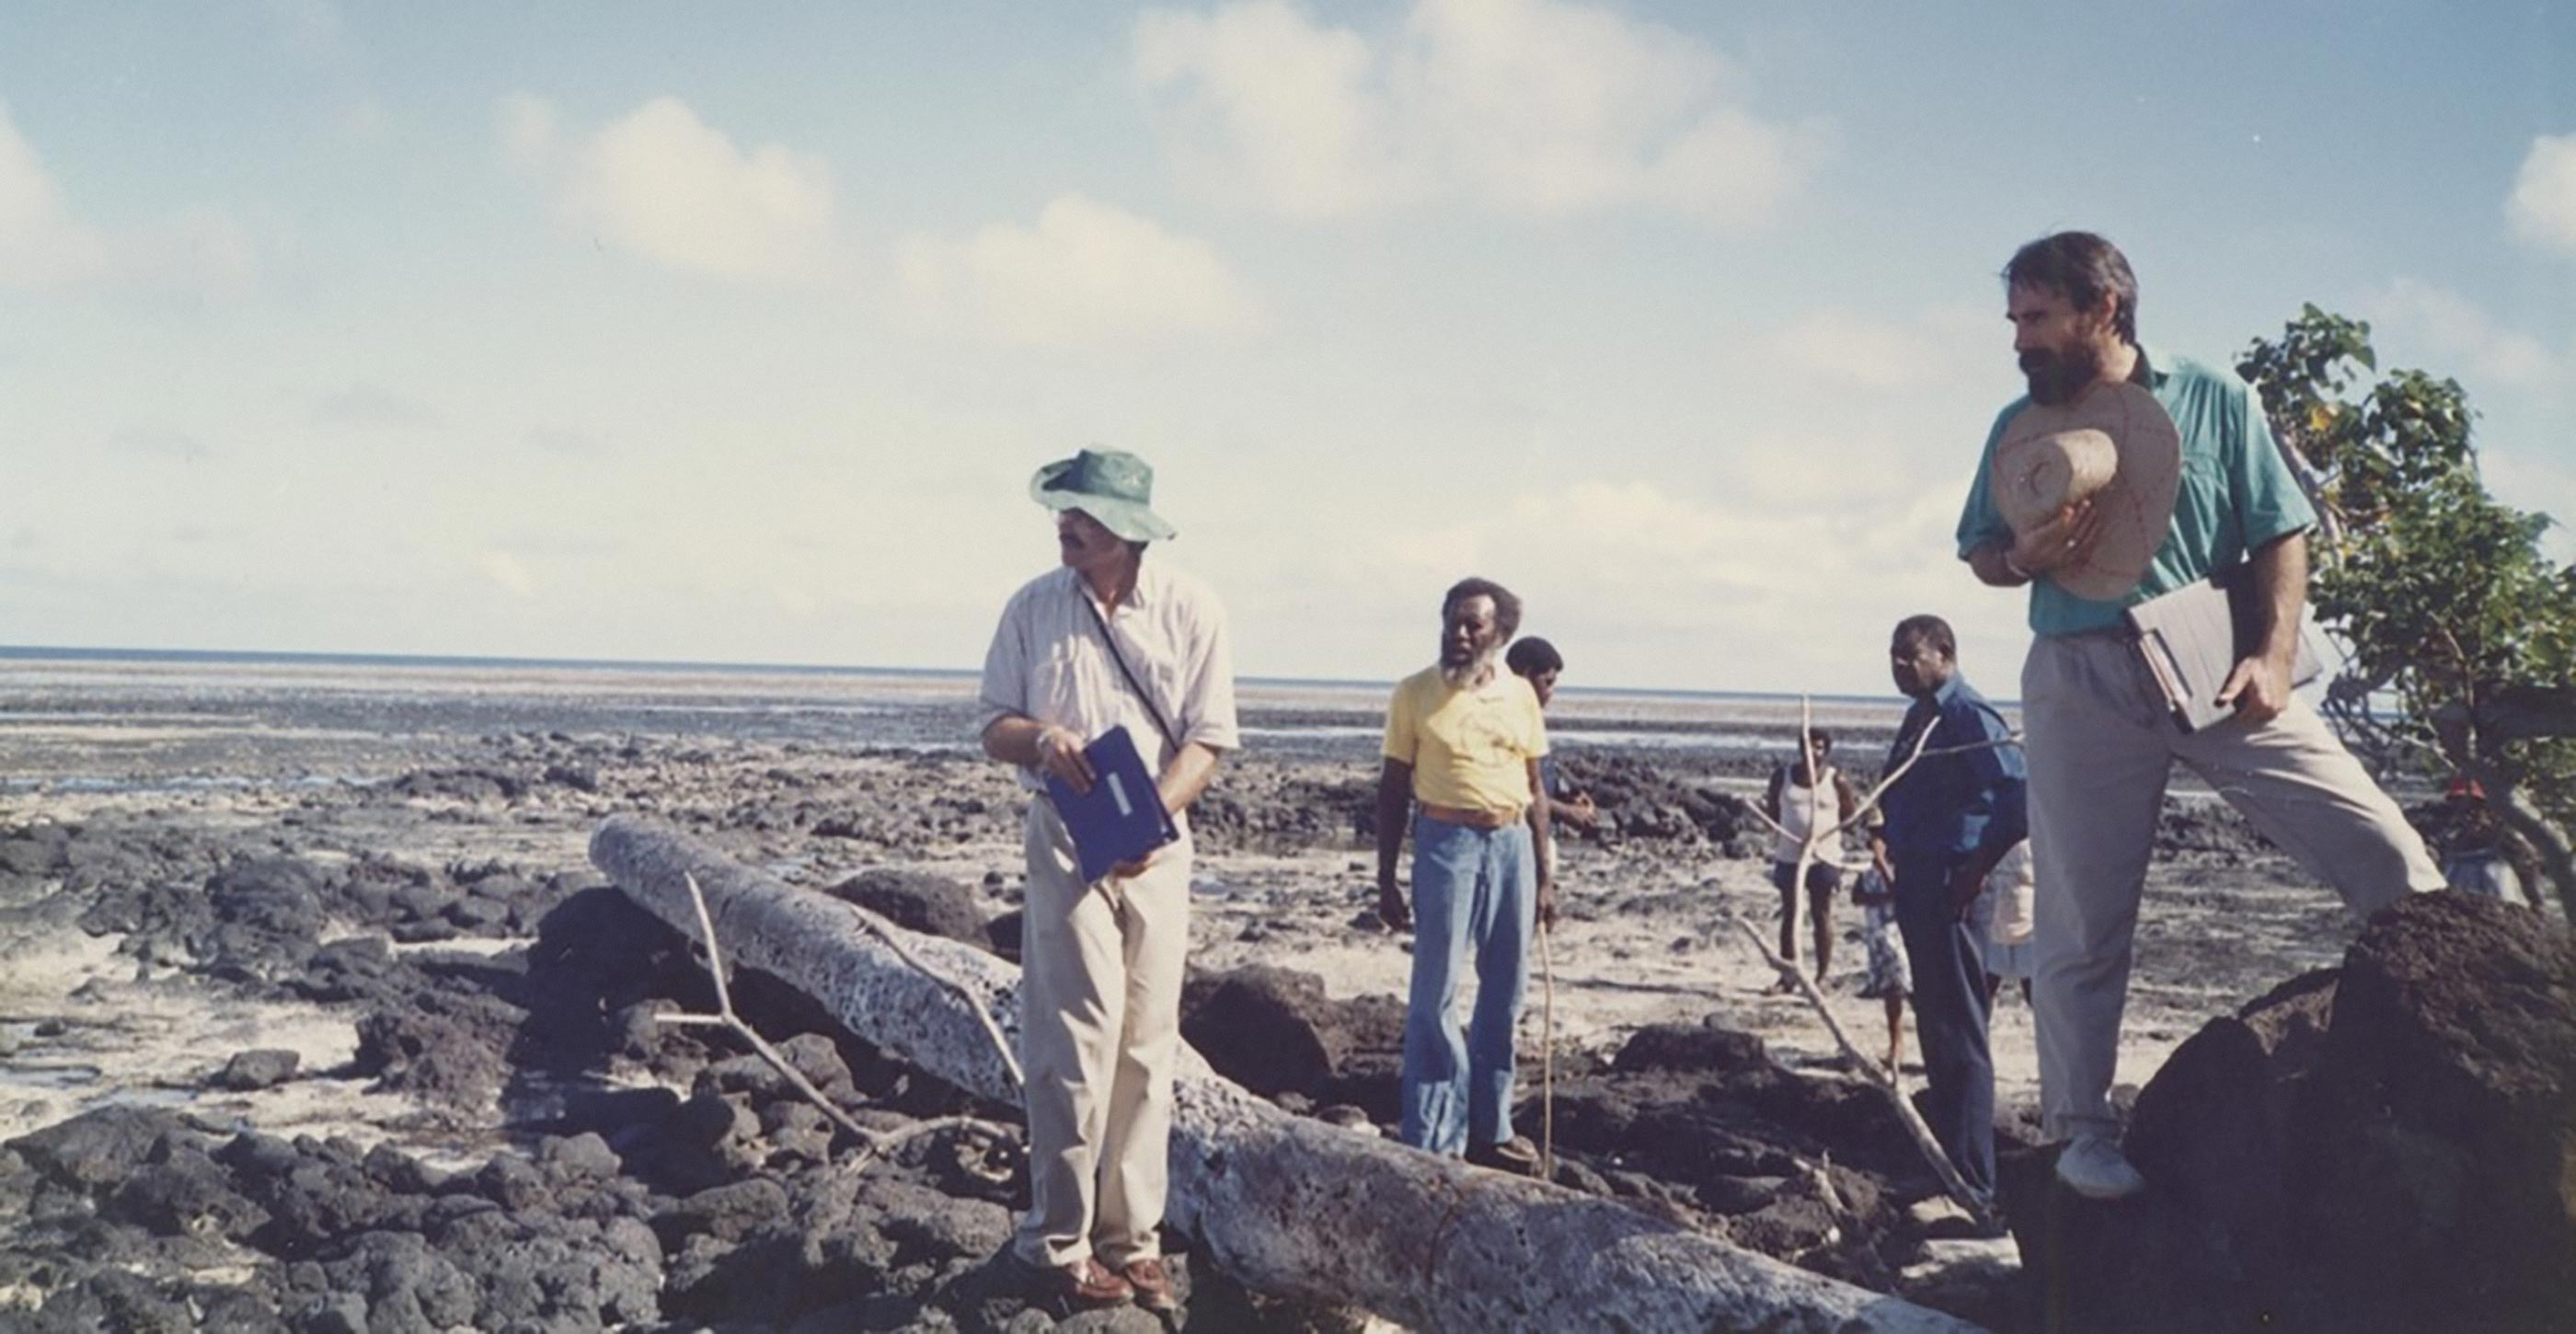 Eddie Mabo and traditional owners lead a site visit on Mer Island